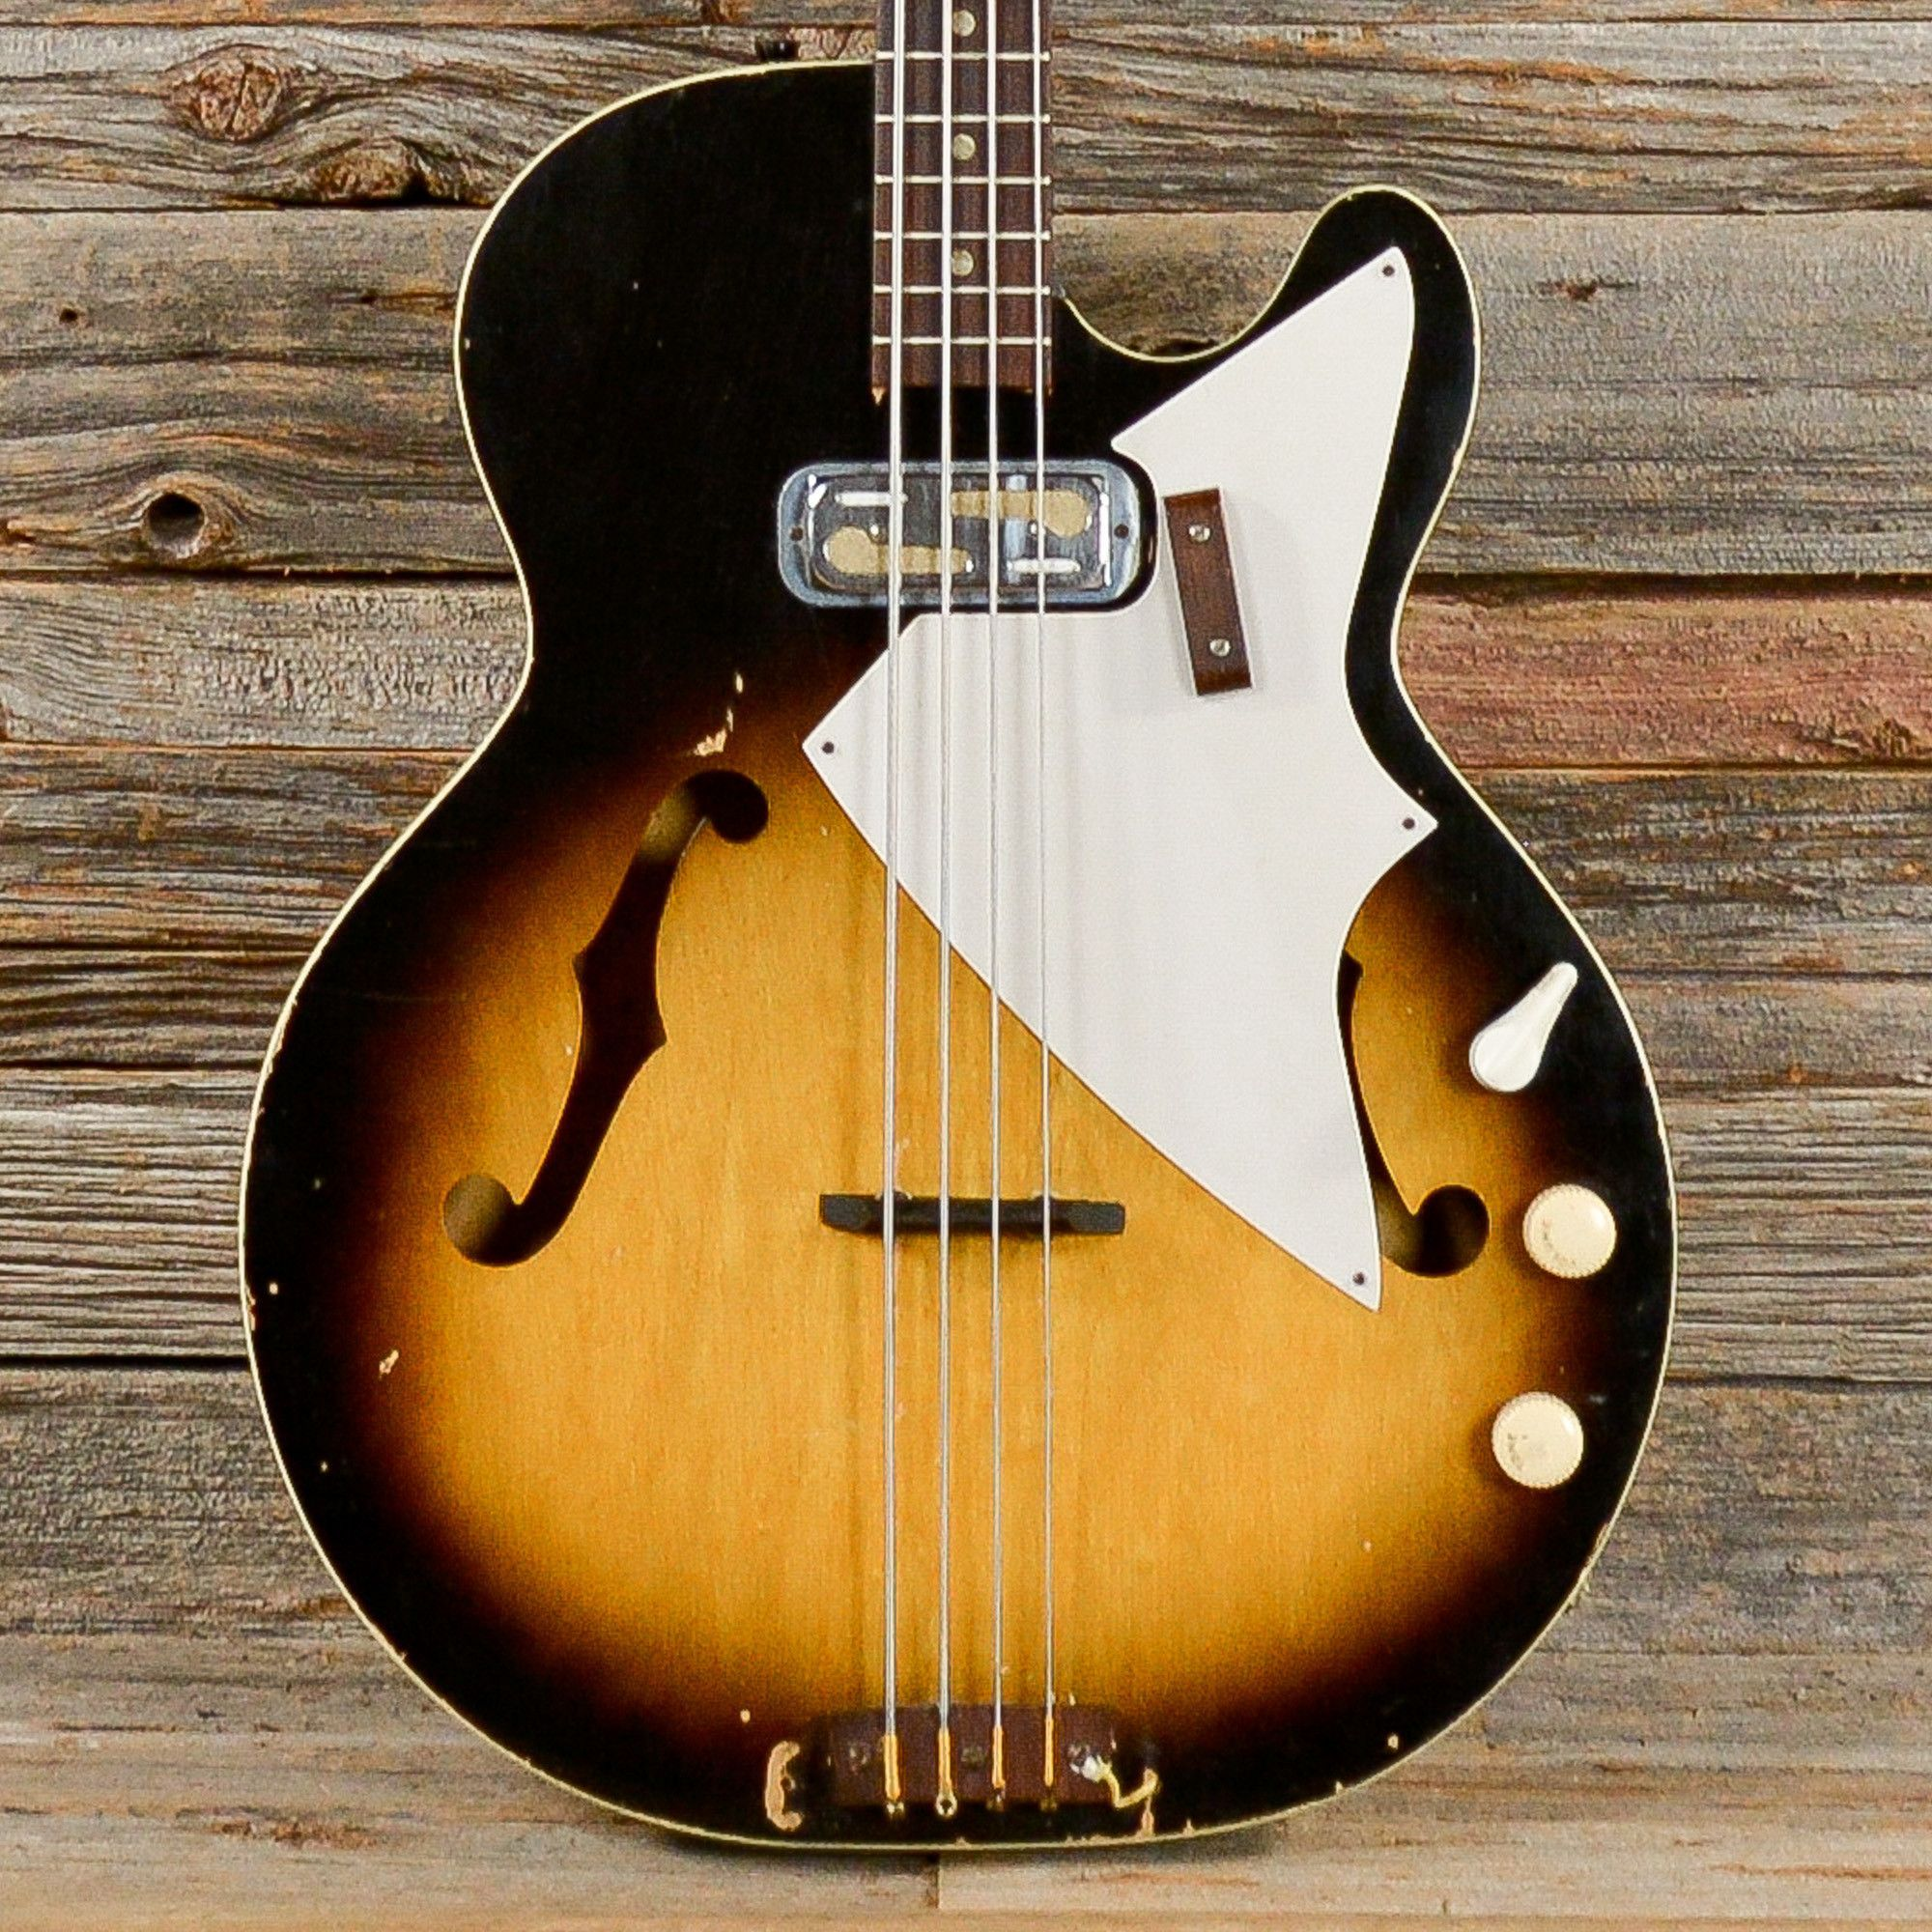 harmony h 22 hollow body bass sunburst 1961 s249 electric guitar in 2019 bass harmony. Black Bedroom Furniture Sets. Home Design Ideas